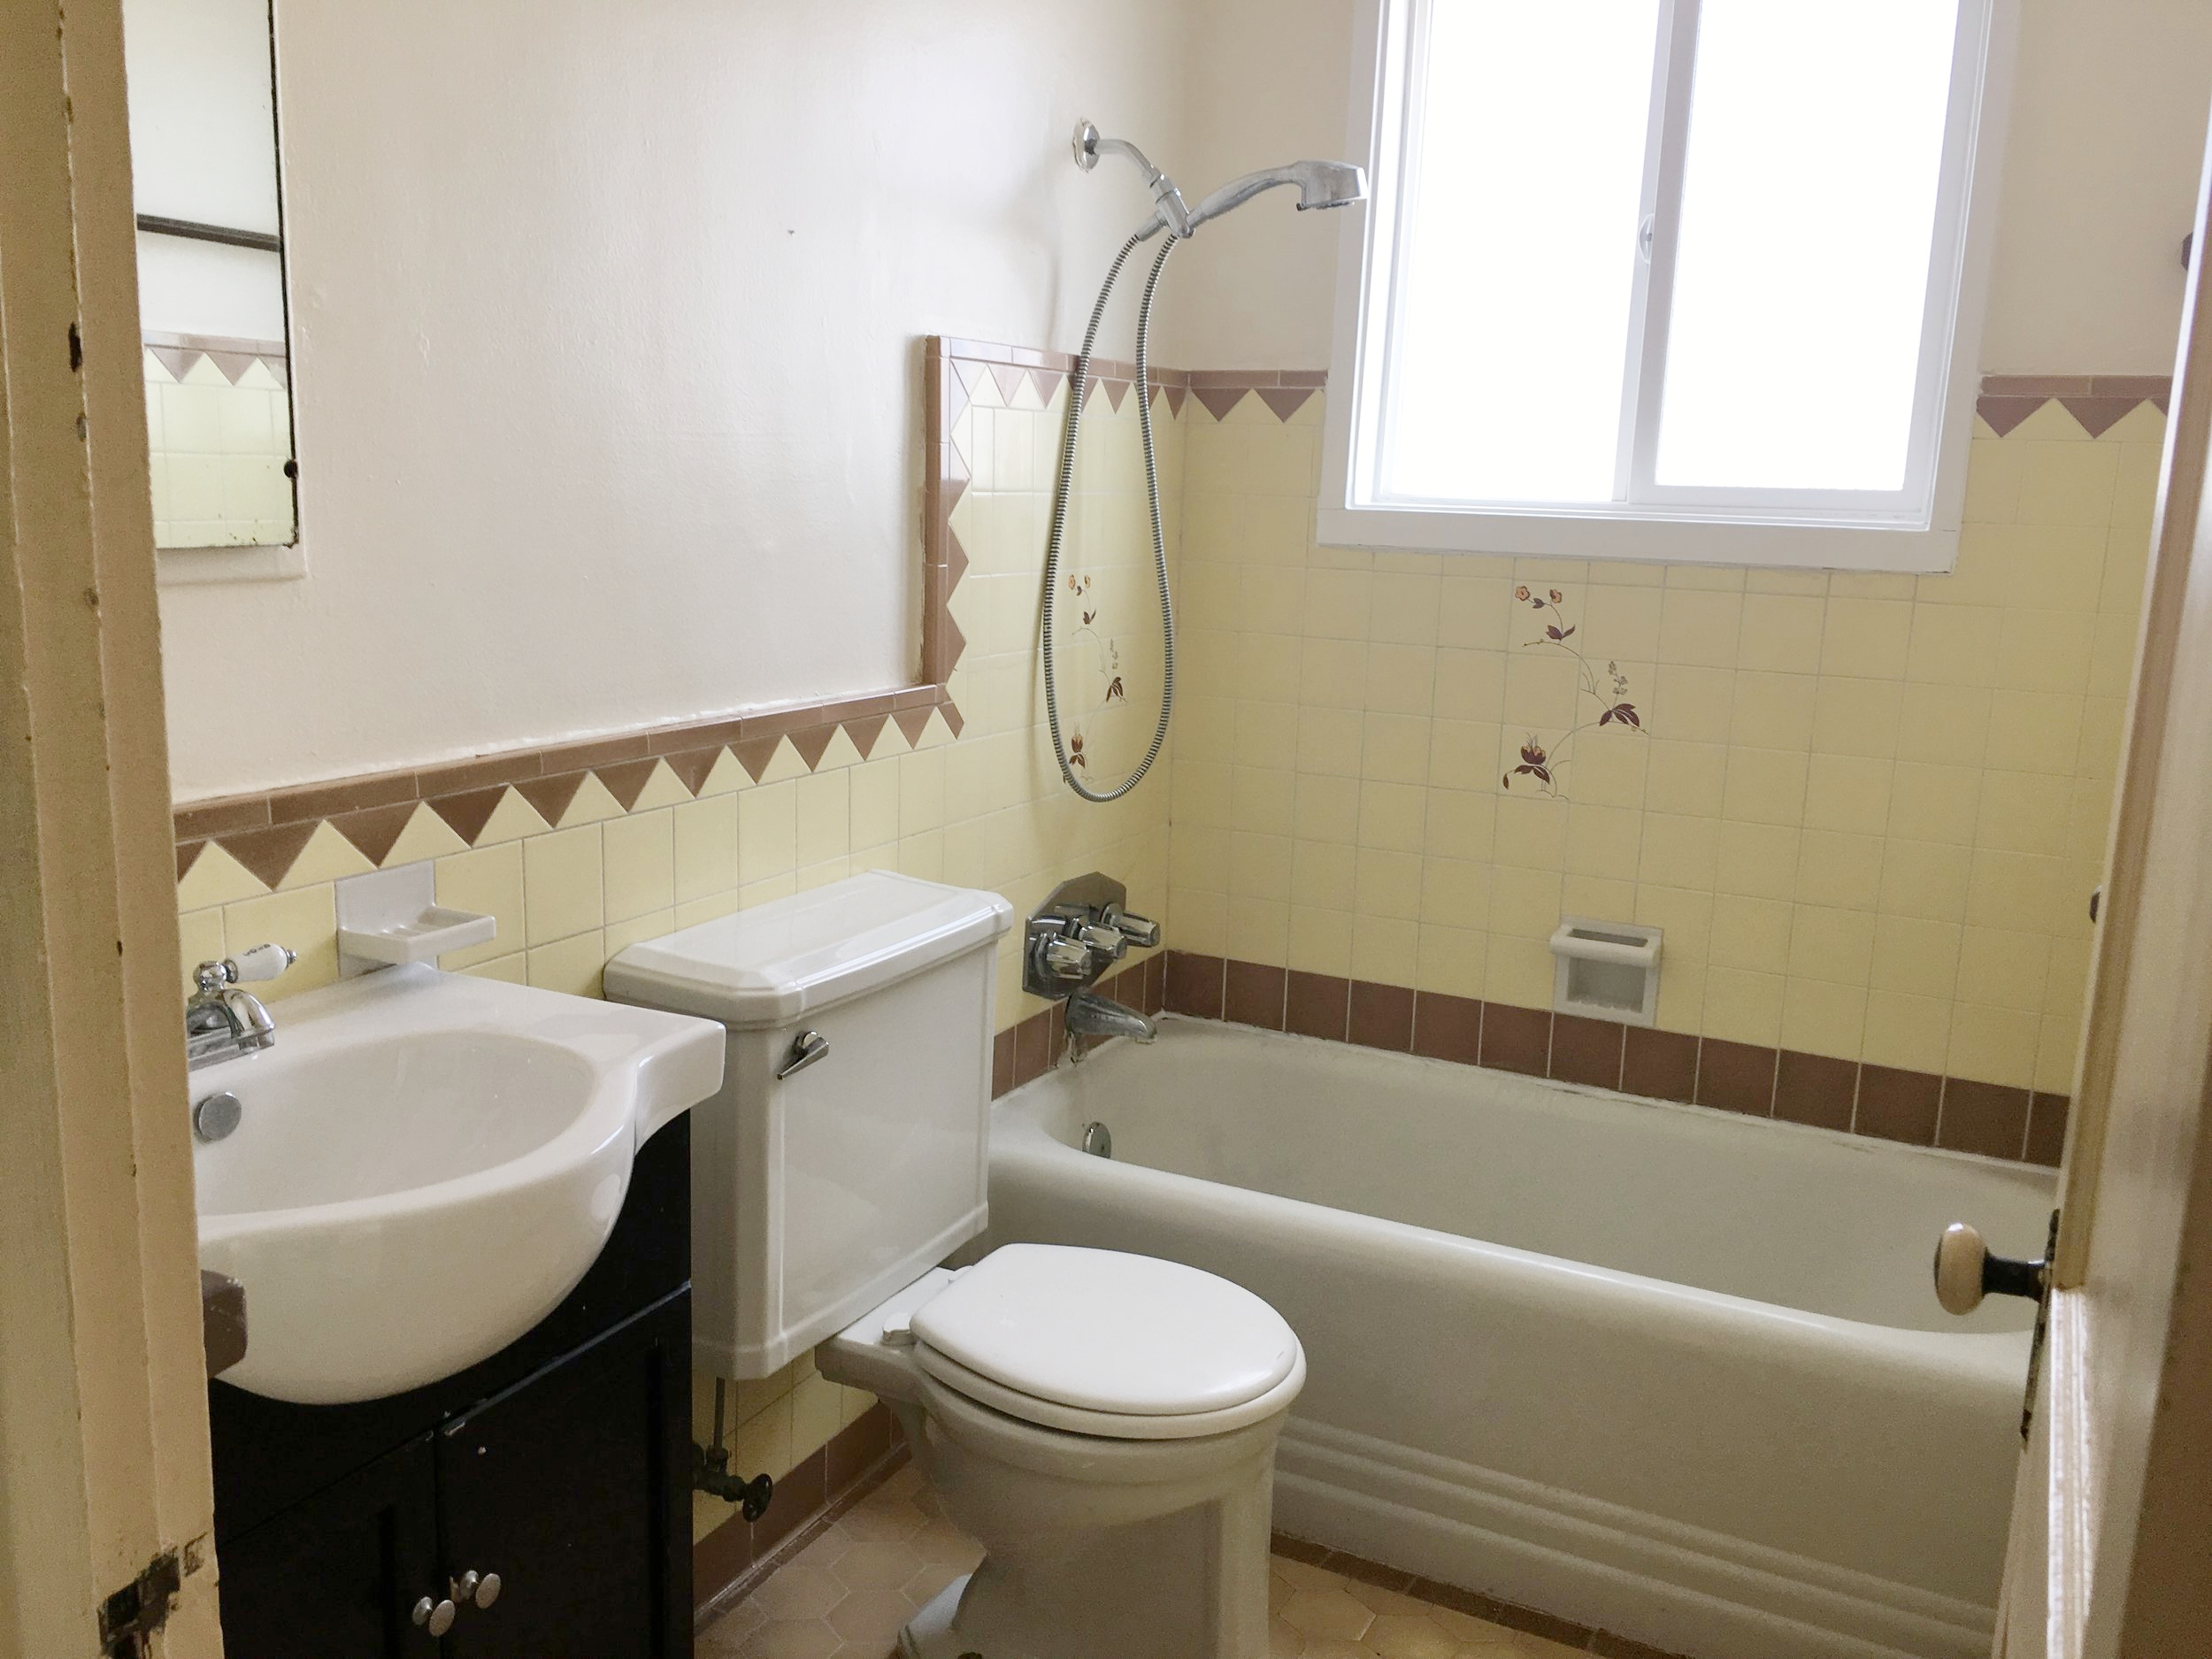 Retro bathroom before renovation